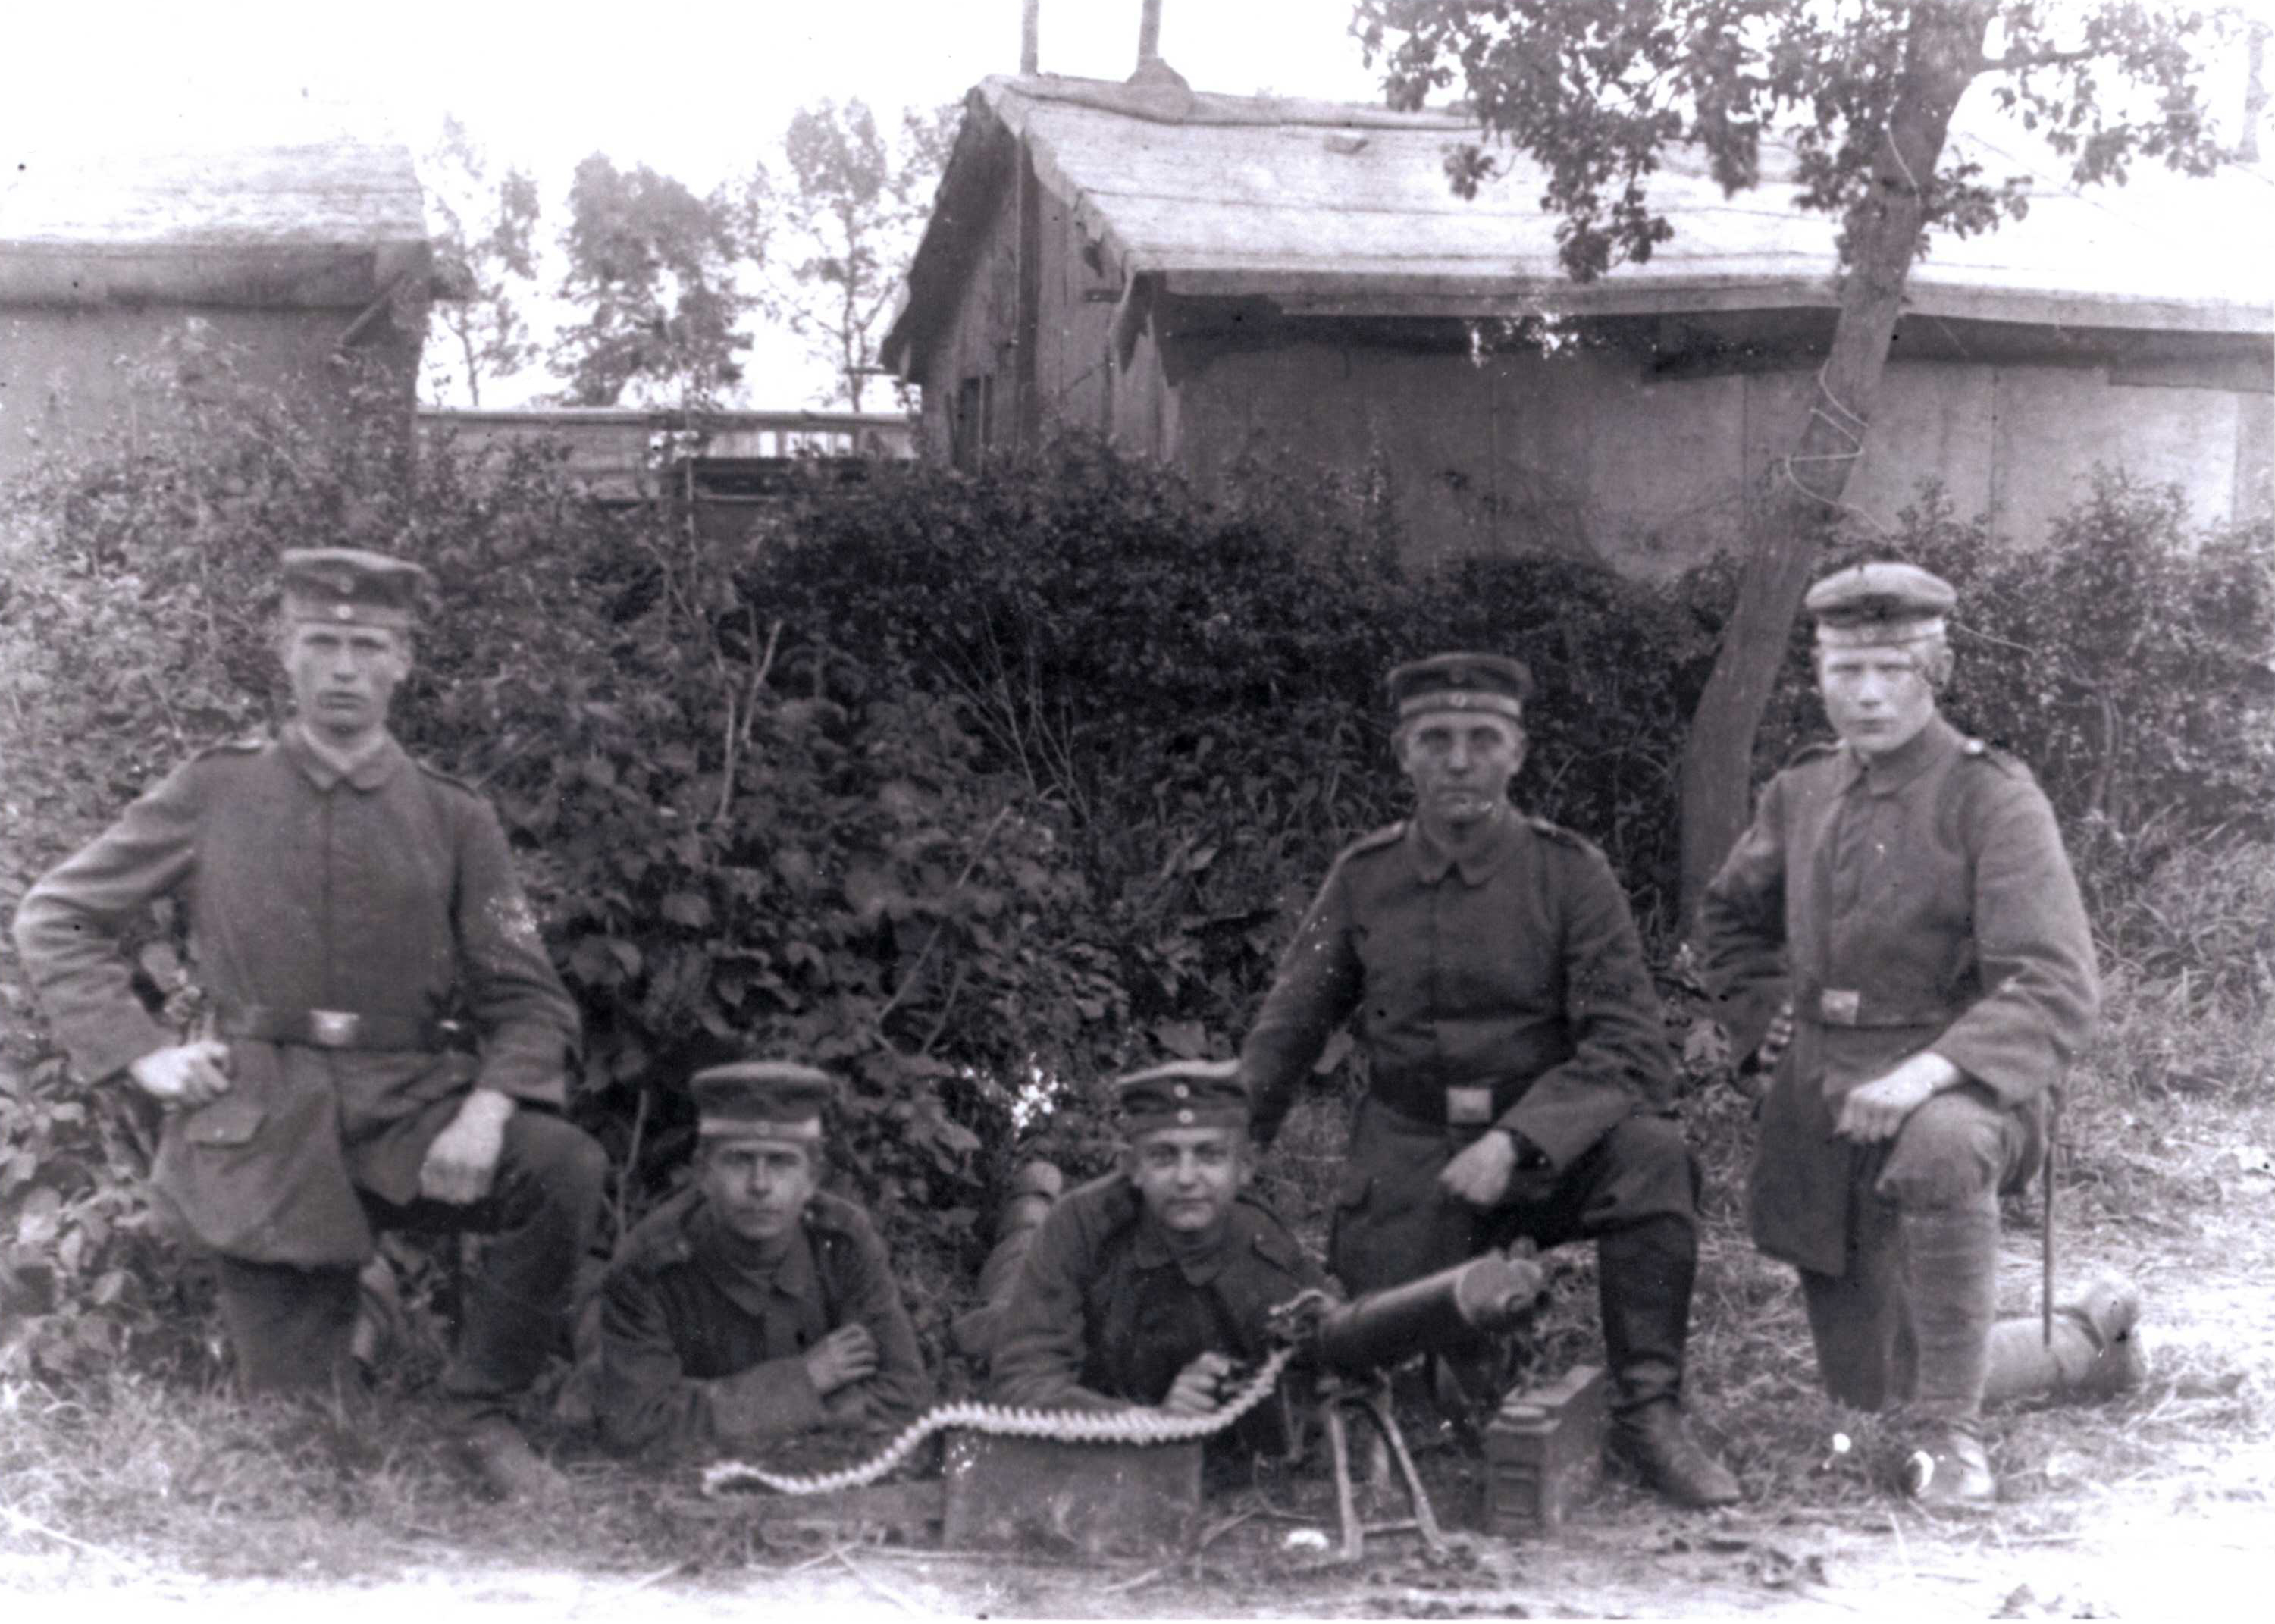 Gustav & his machine gun unit in WWI Germany, second from the left